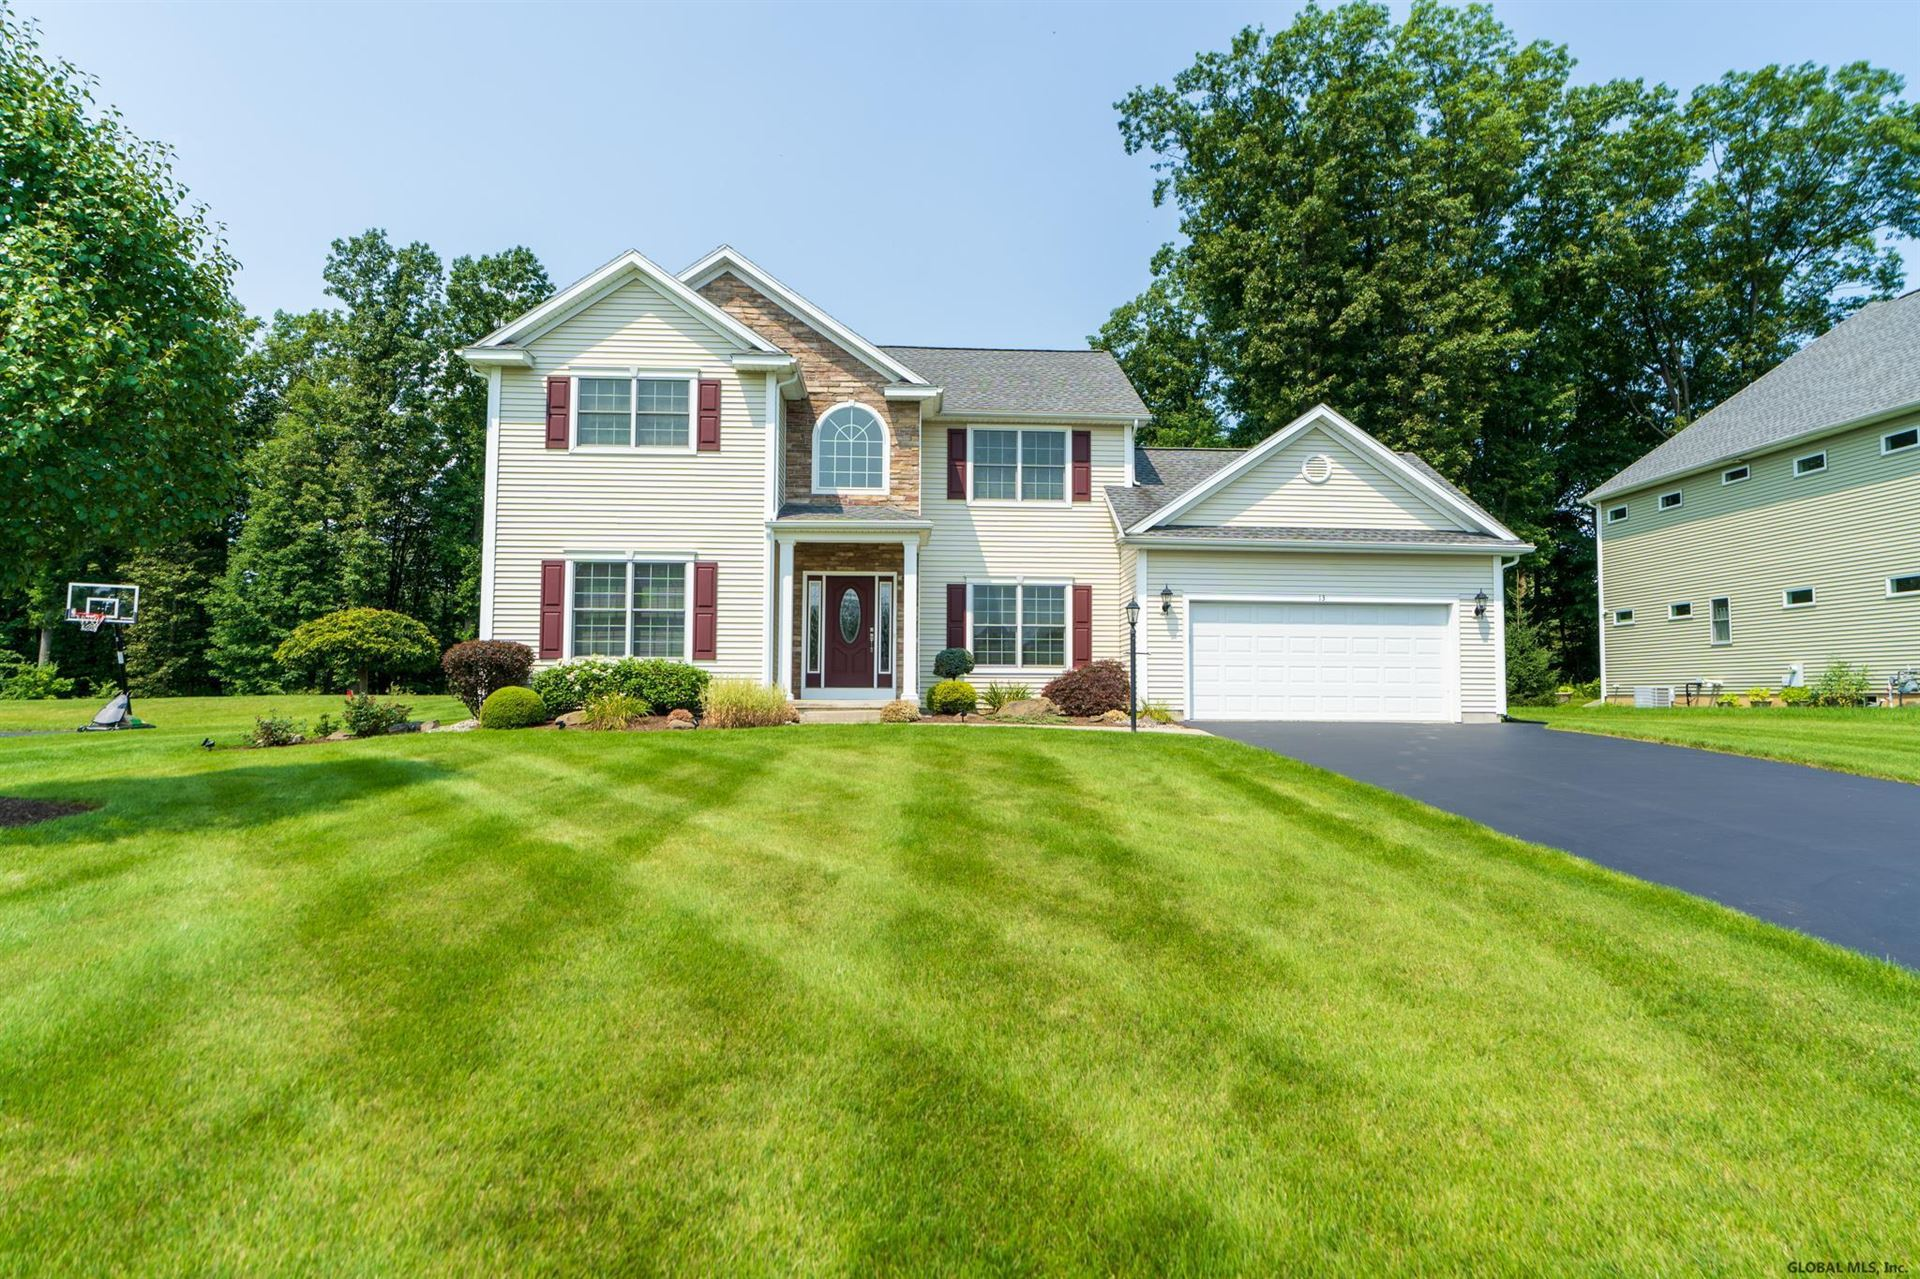 13 CHAMPAGNE CT, Colonie, NY 12189 - #: 202124566